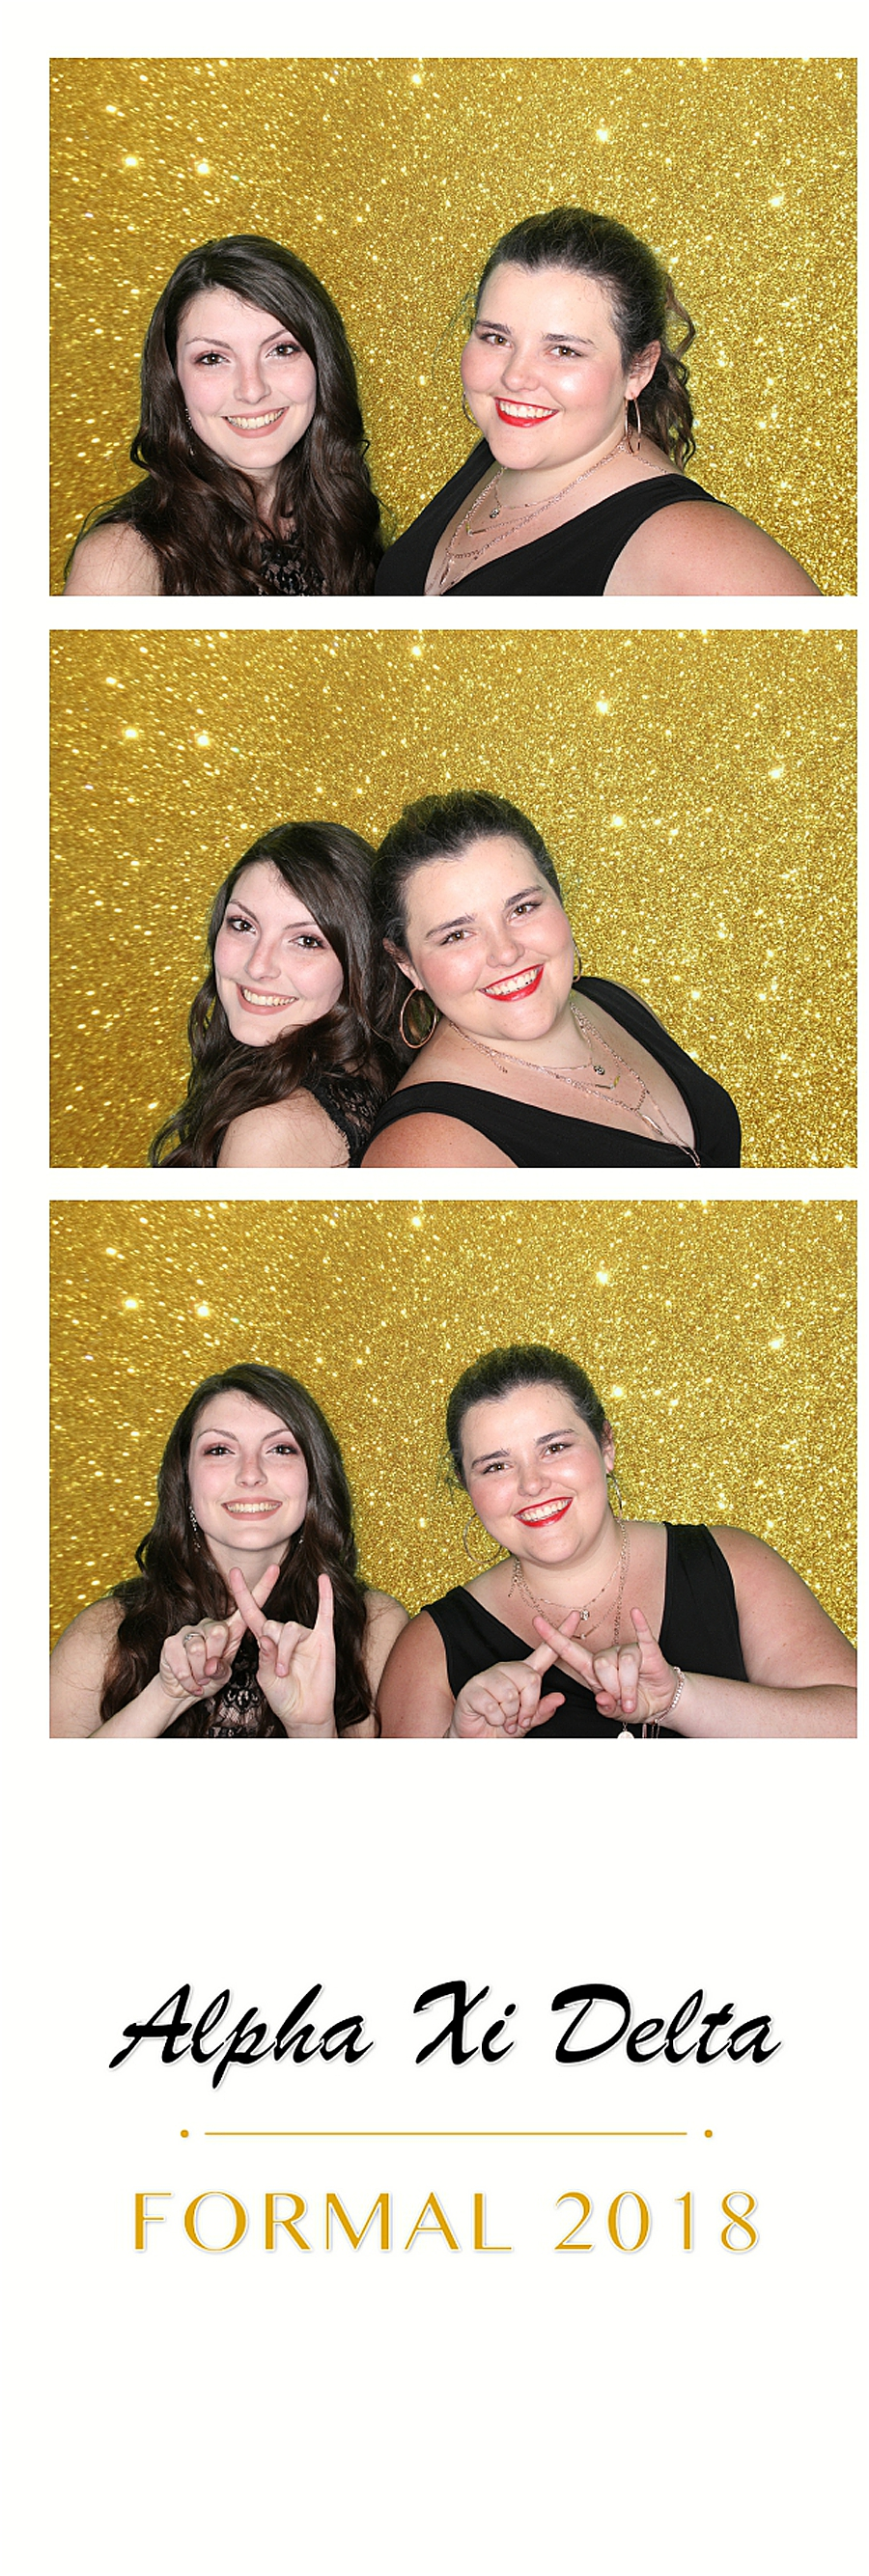 Knoxville Photo Booth_1580.jpg